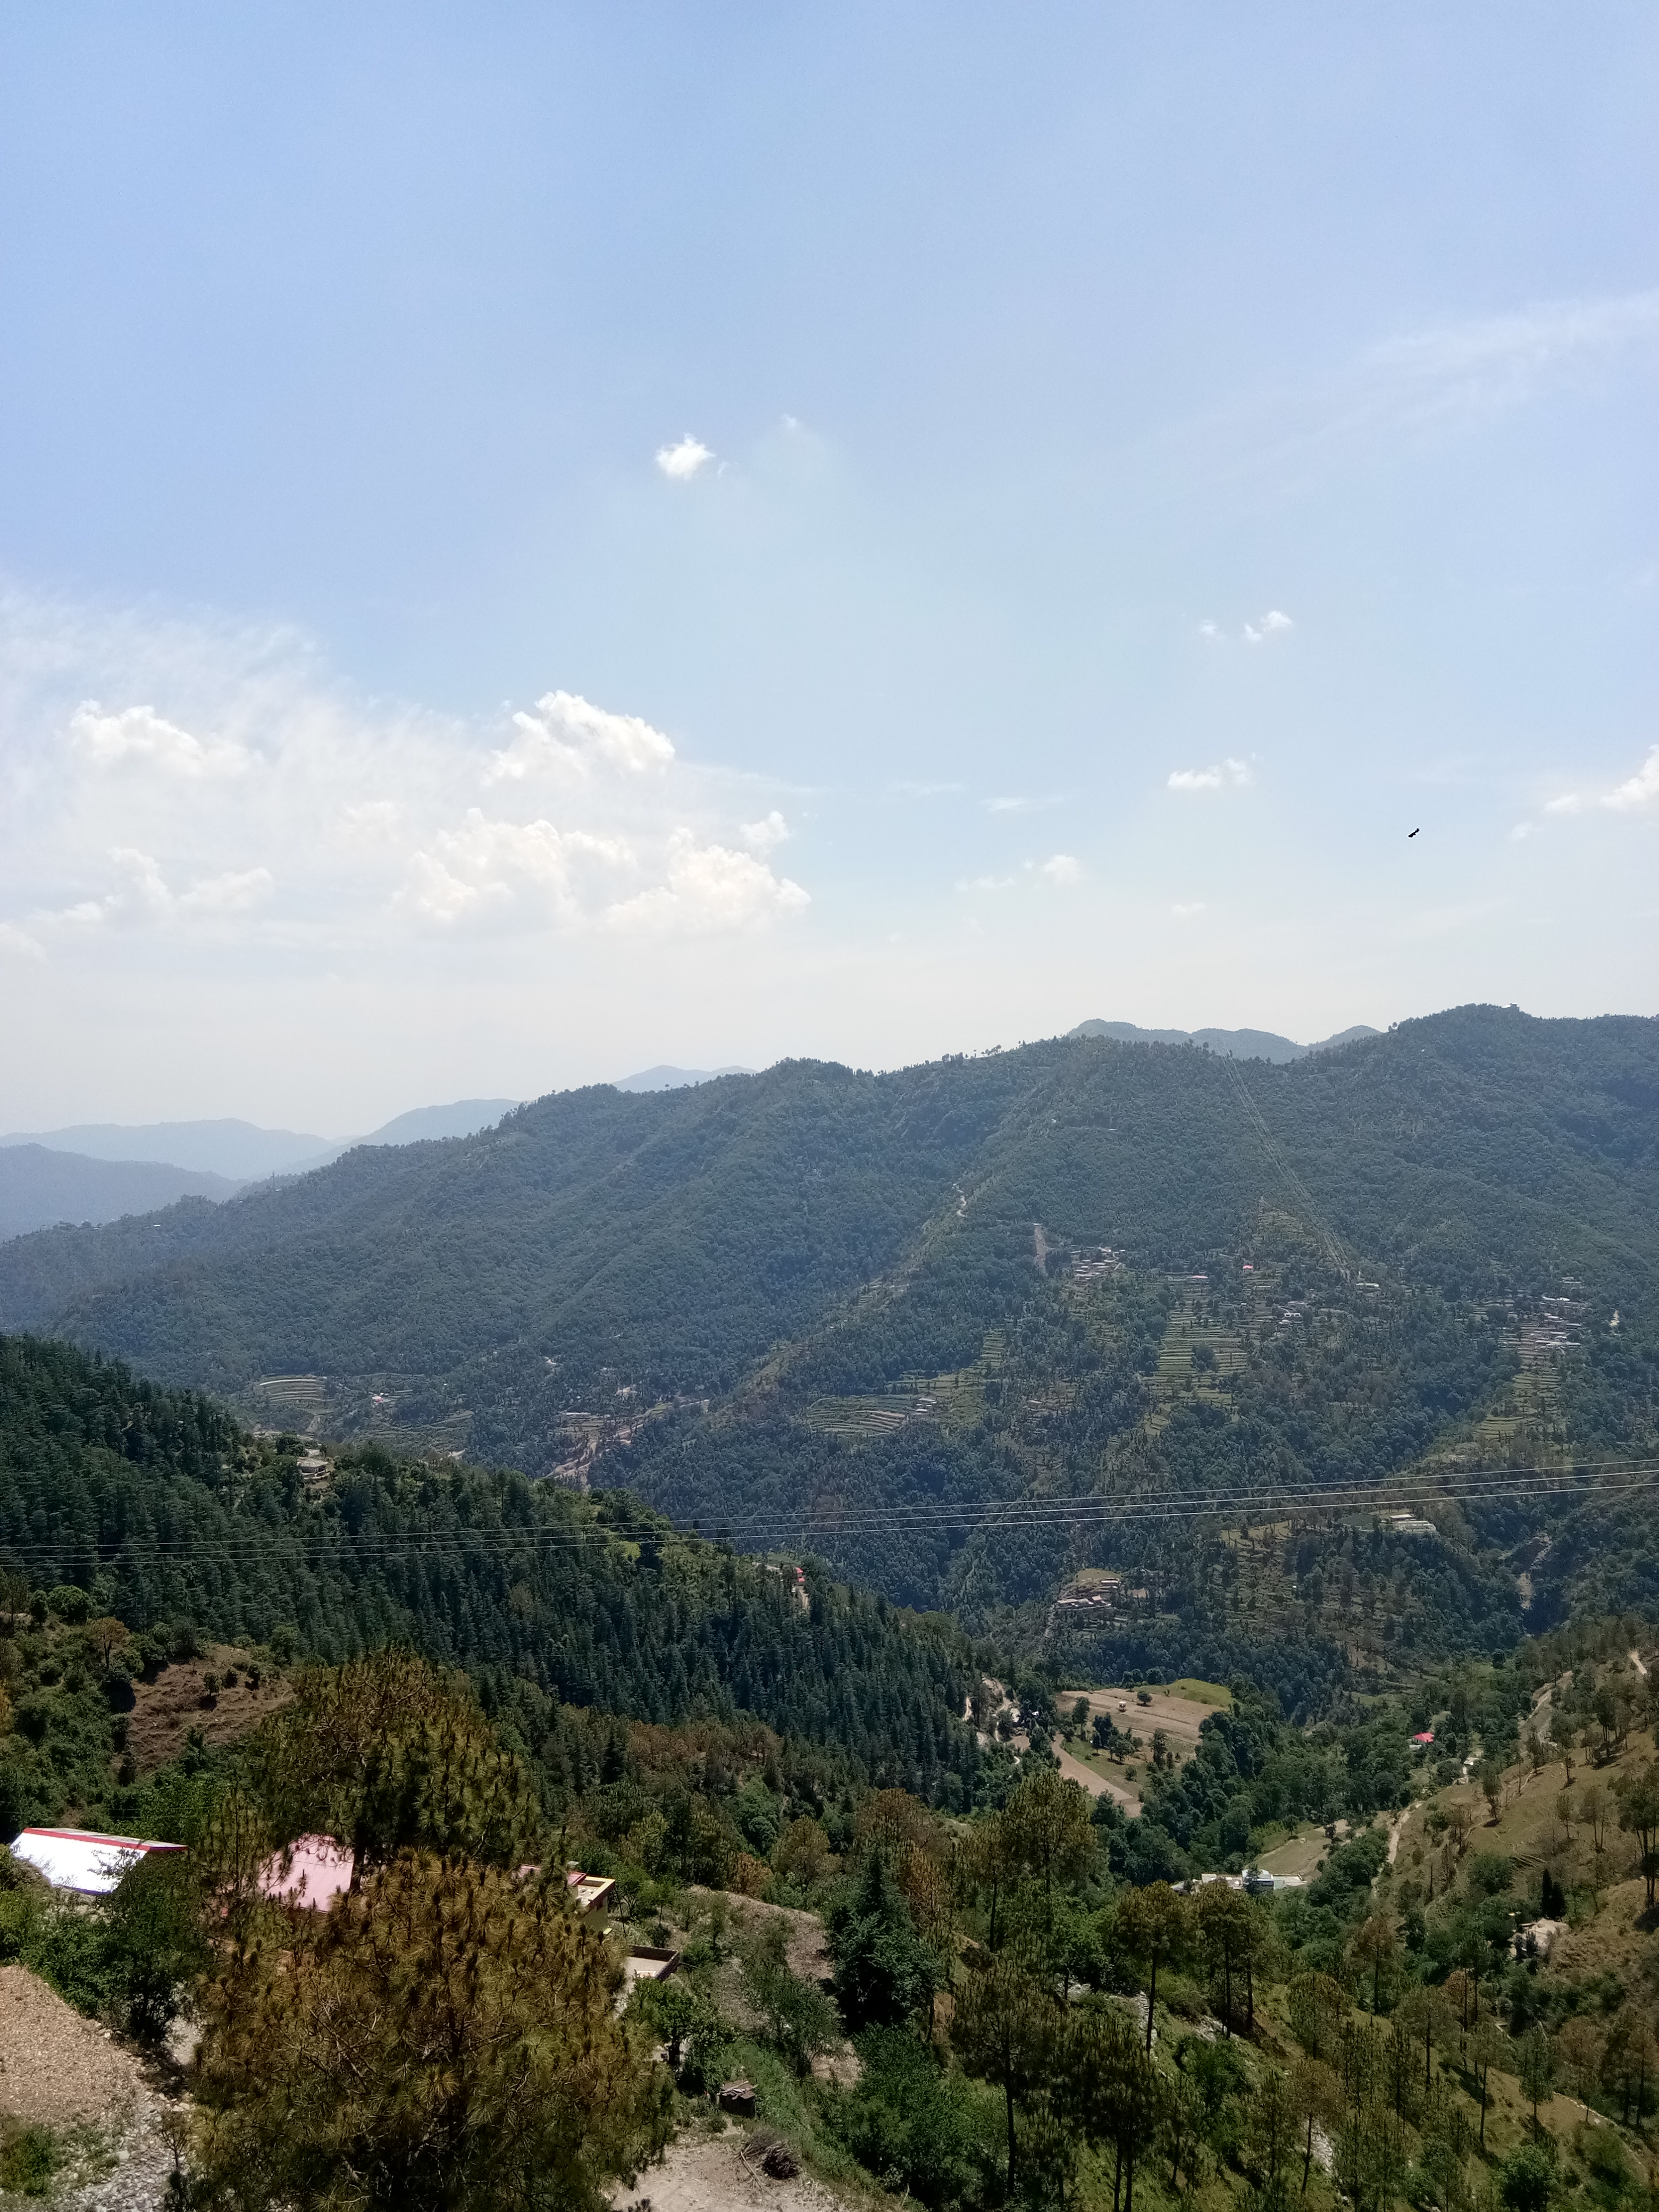 13 Biswa Map- Approved Plot for sale at Near Beolia Shimla — Drive in — Map approved 2+ — Sunny and beautiful View — 400m Link from Main Road — Price – 65 Lakhs